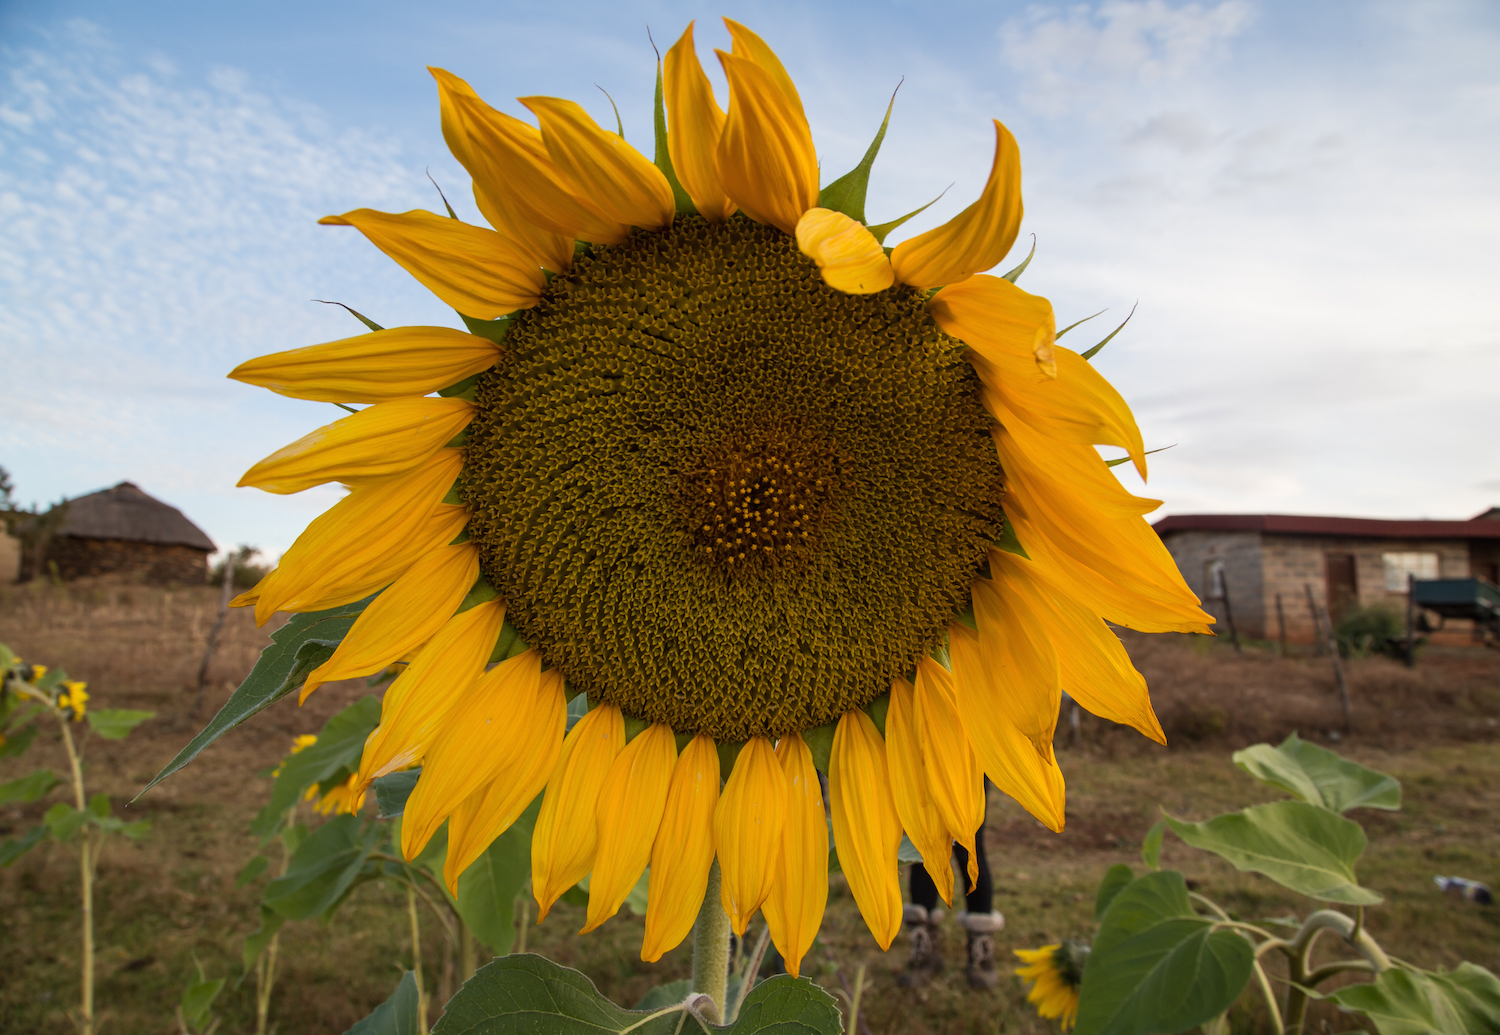 sunflowers2.jpg